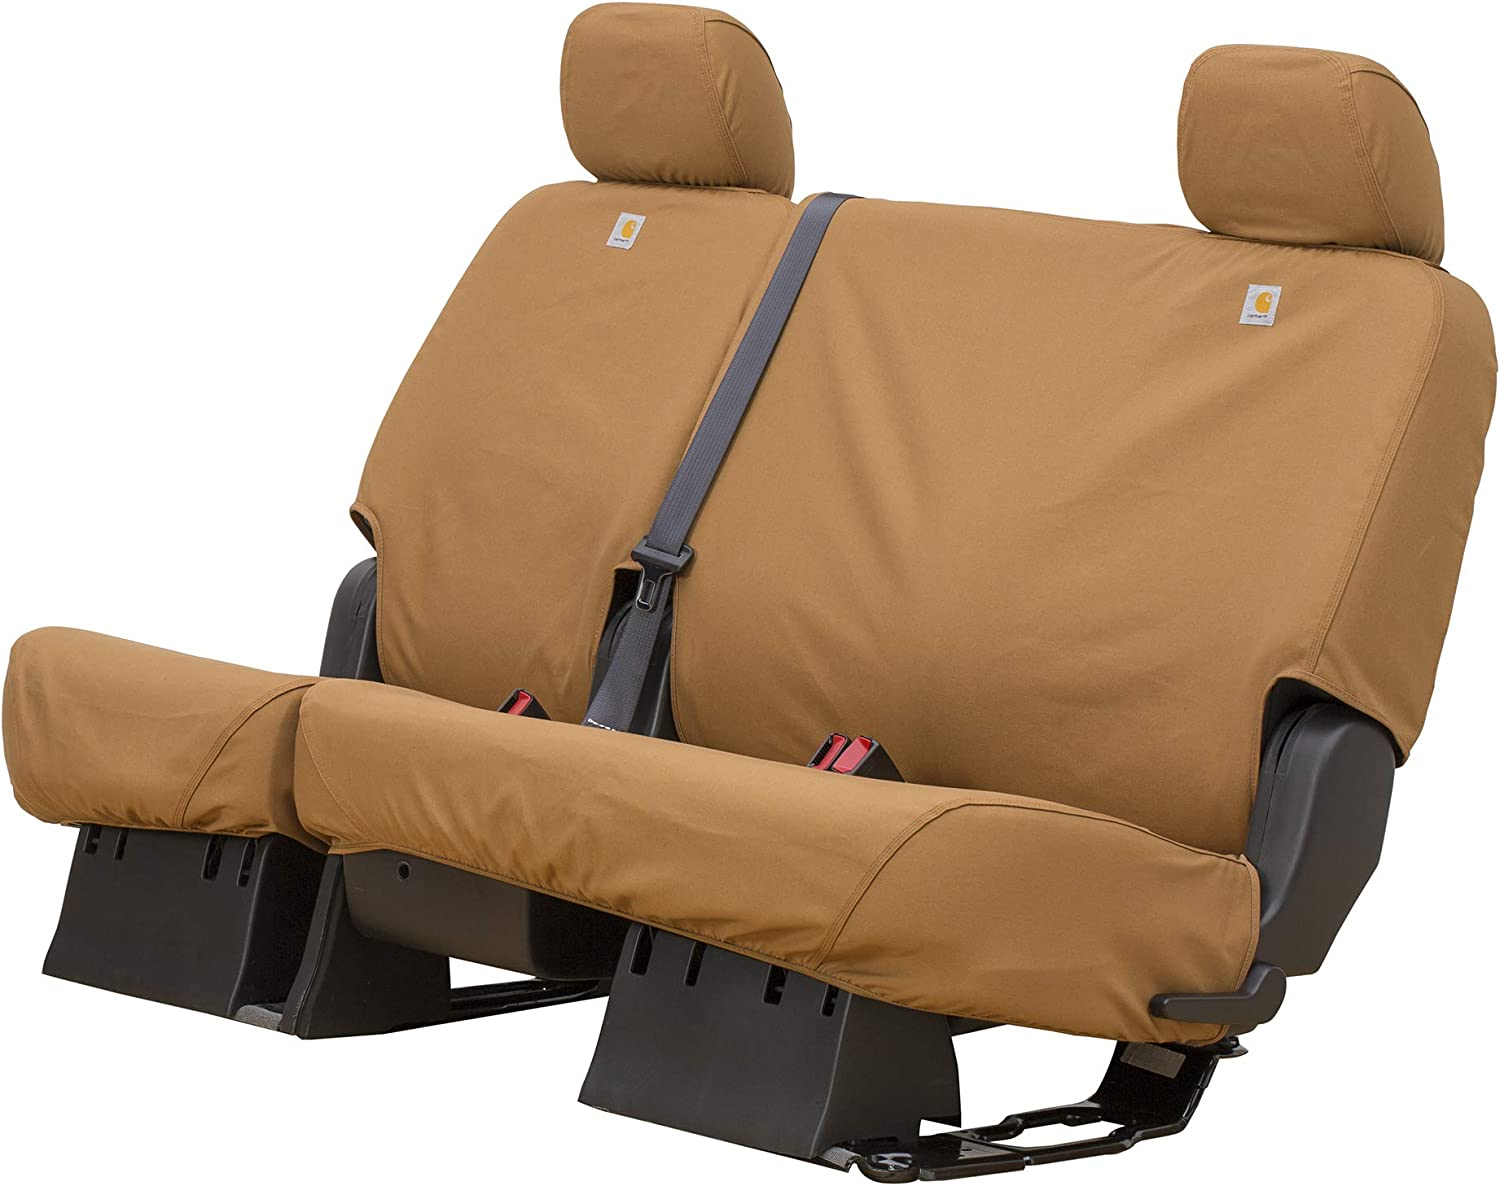 Covercraft Carhartt SeatSaver Second Row Custom Fit Seat Cover for Select Chevrolet//GMC Models Duck Weave Brown